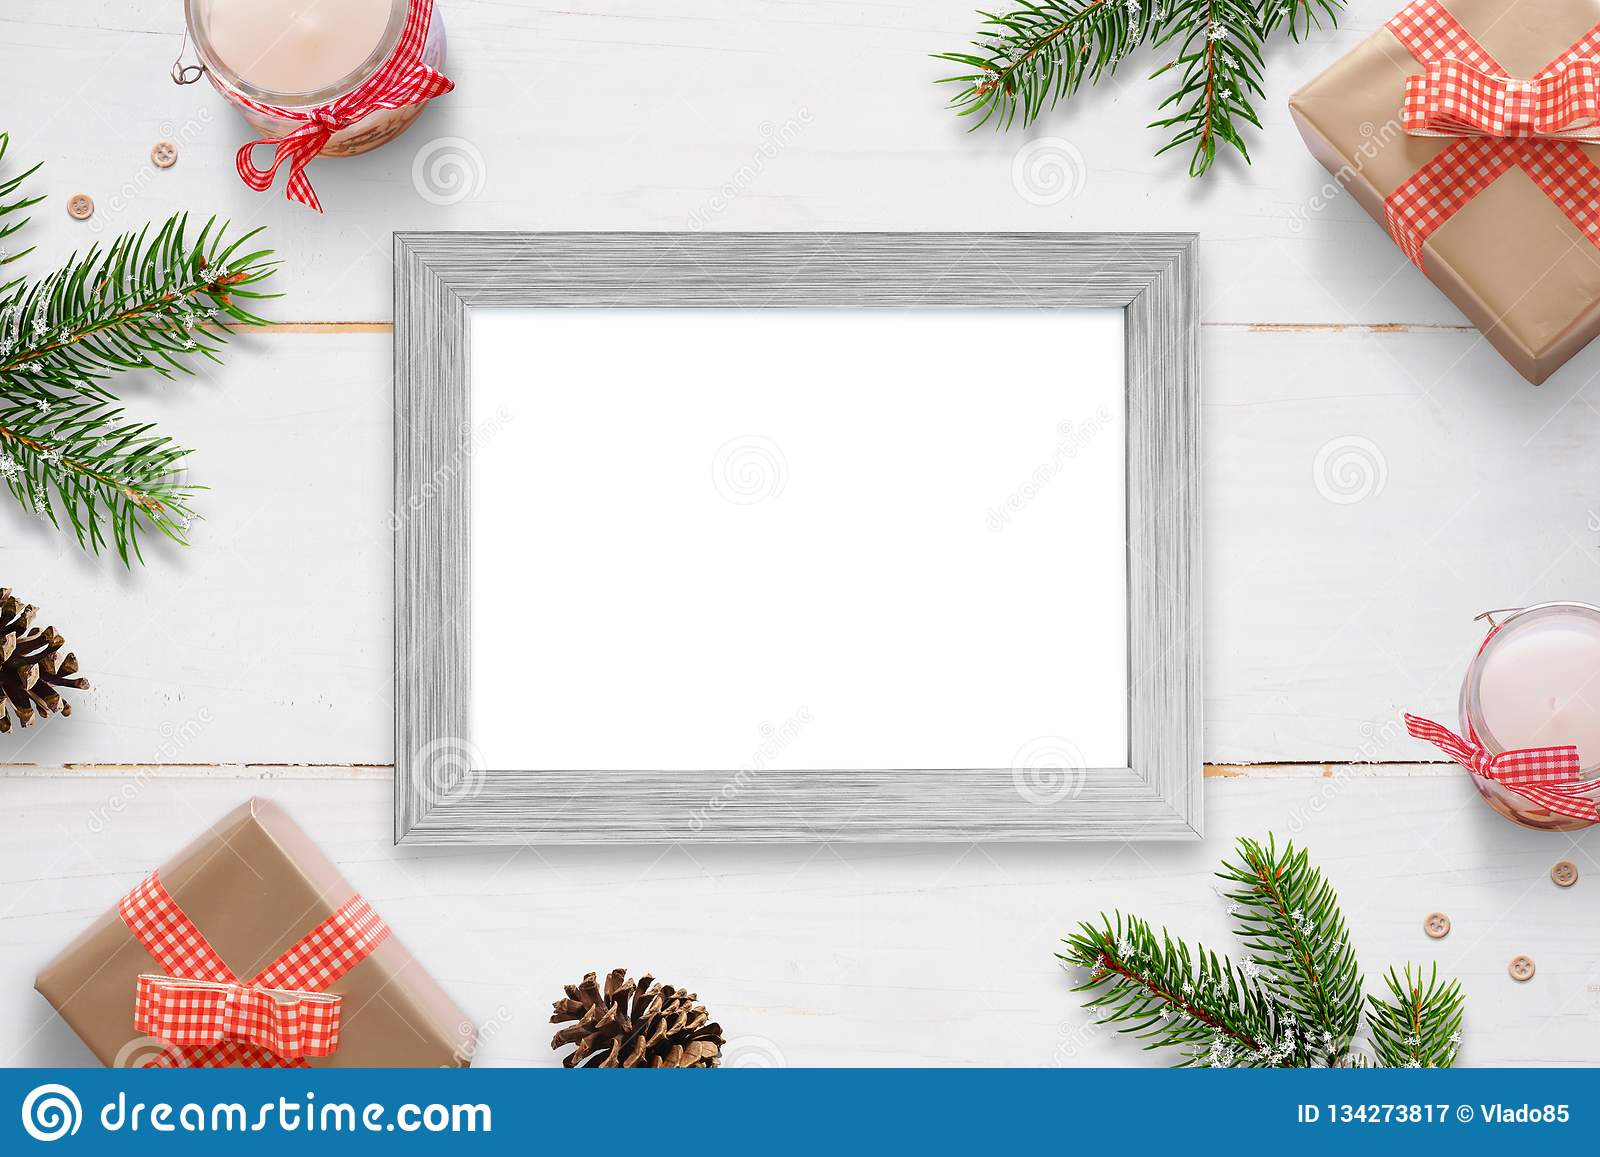 Horizontal photo frame surrounded with Christmas New Year gifts, tree branches and decorations.